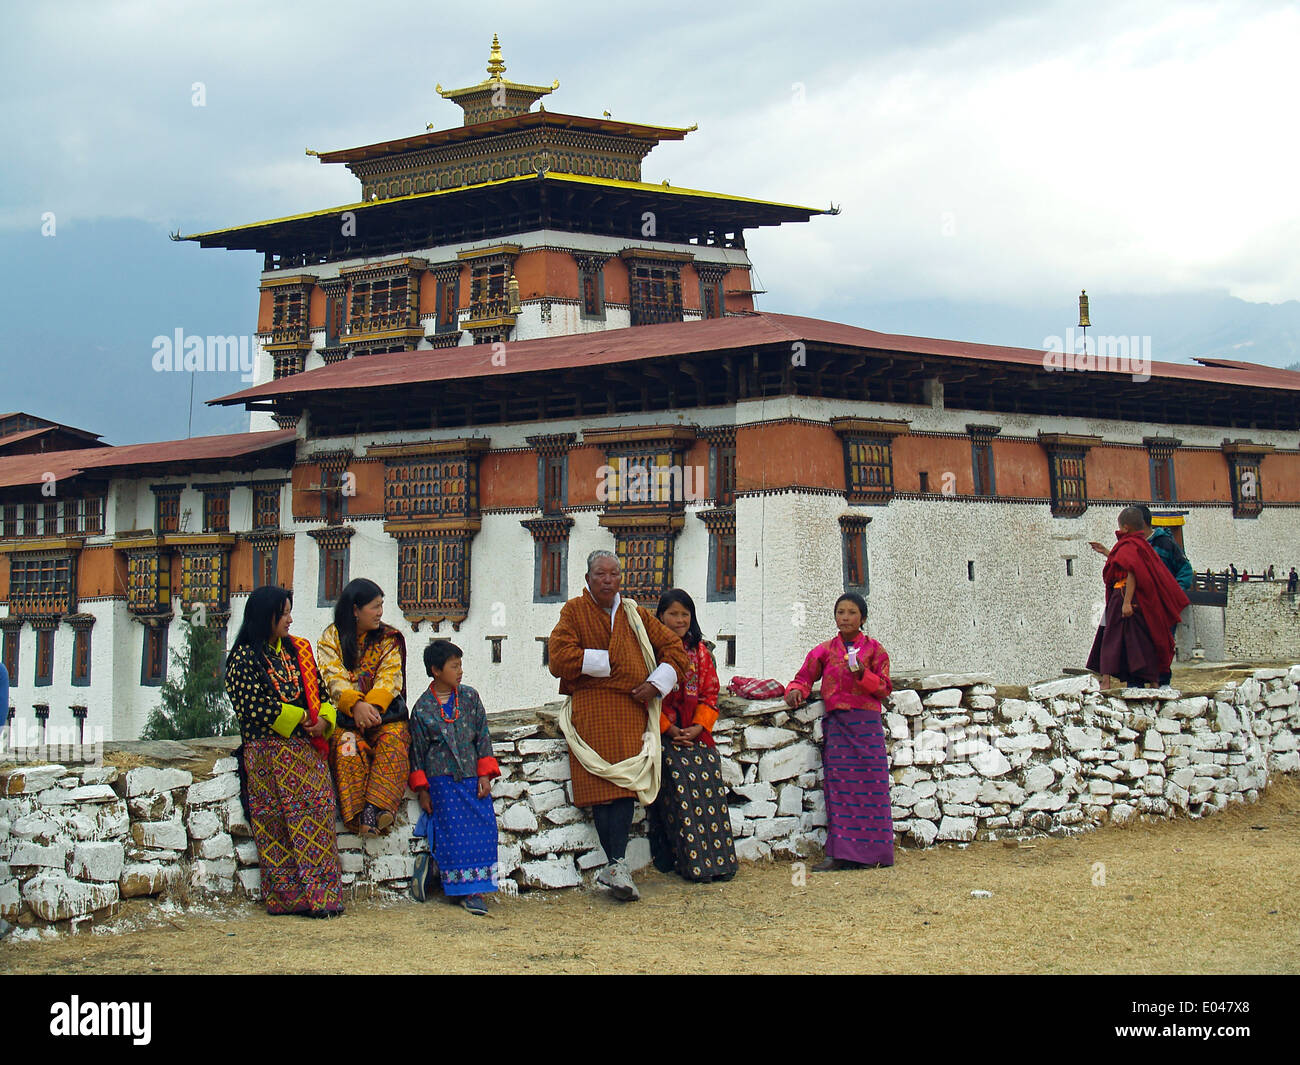 A Bhutanese family dress in ghos pose at the Paro Dzong,Bhutan - Stock Image